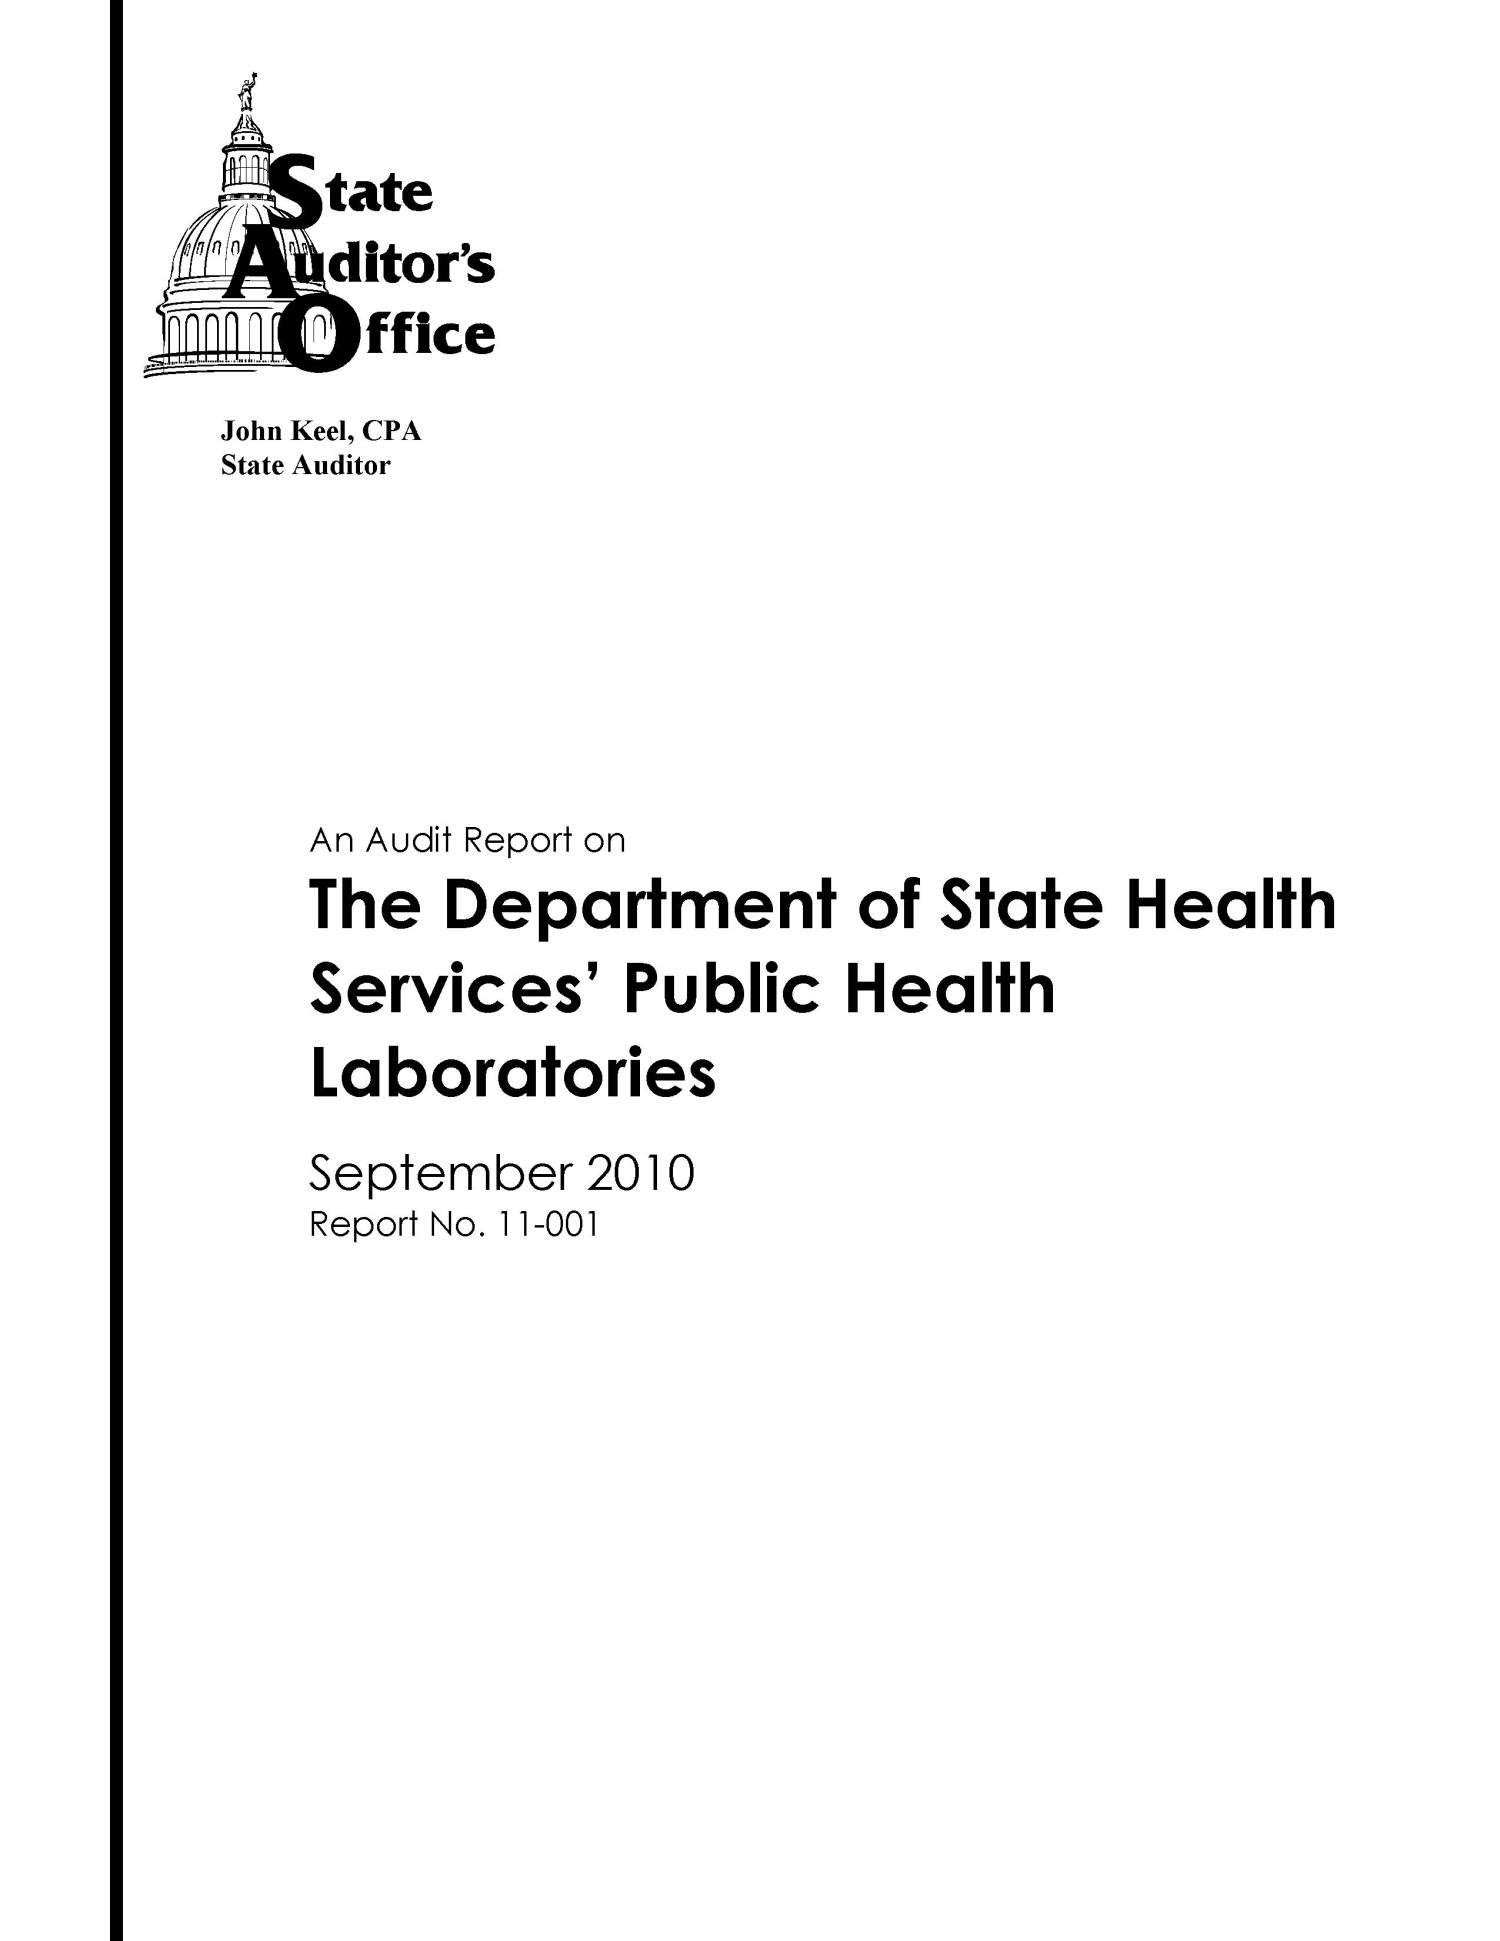 an audit report on the department of state health services public Self-Evaluation Audit an audit report on the department of state health services public health laboratories the portal to texas history